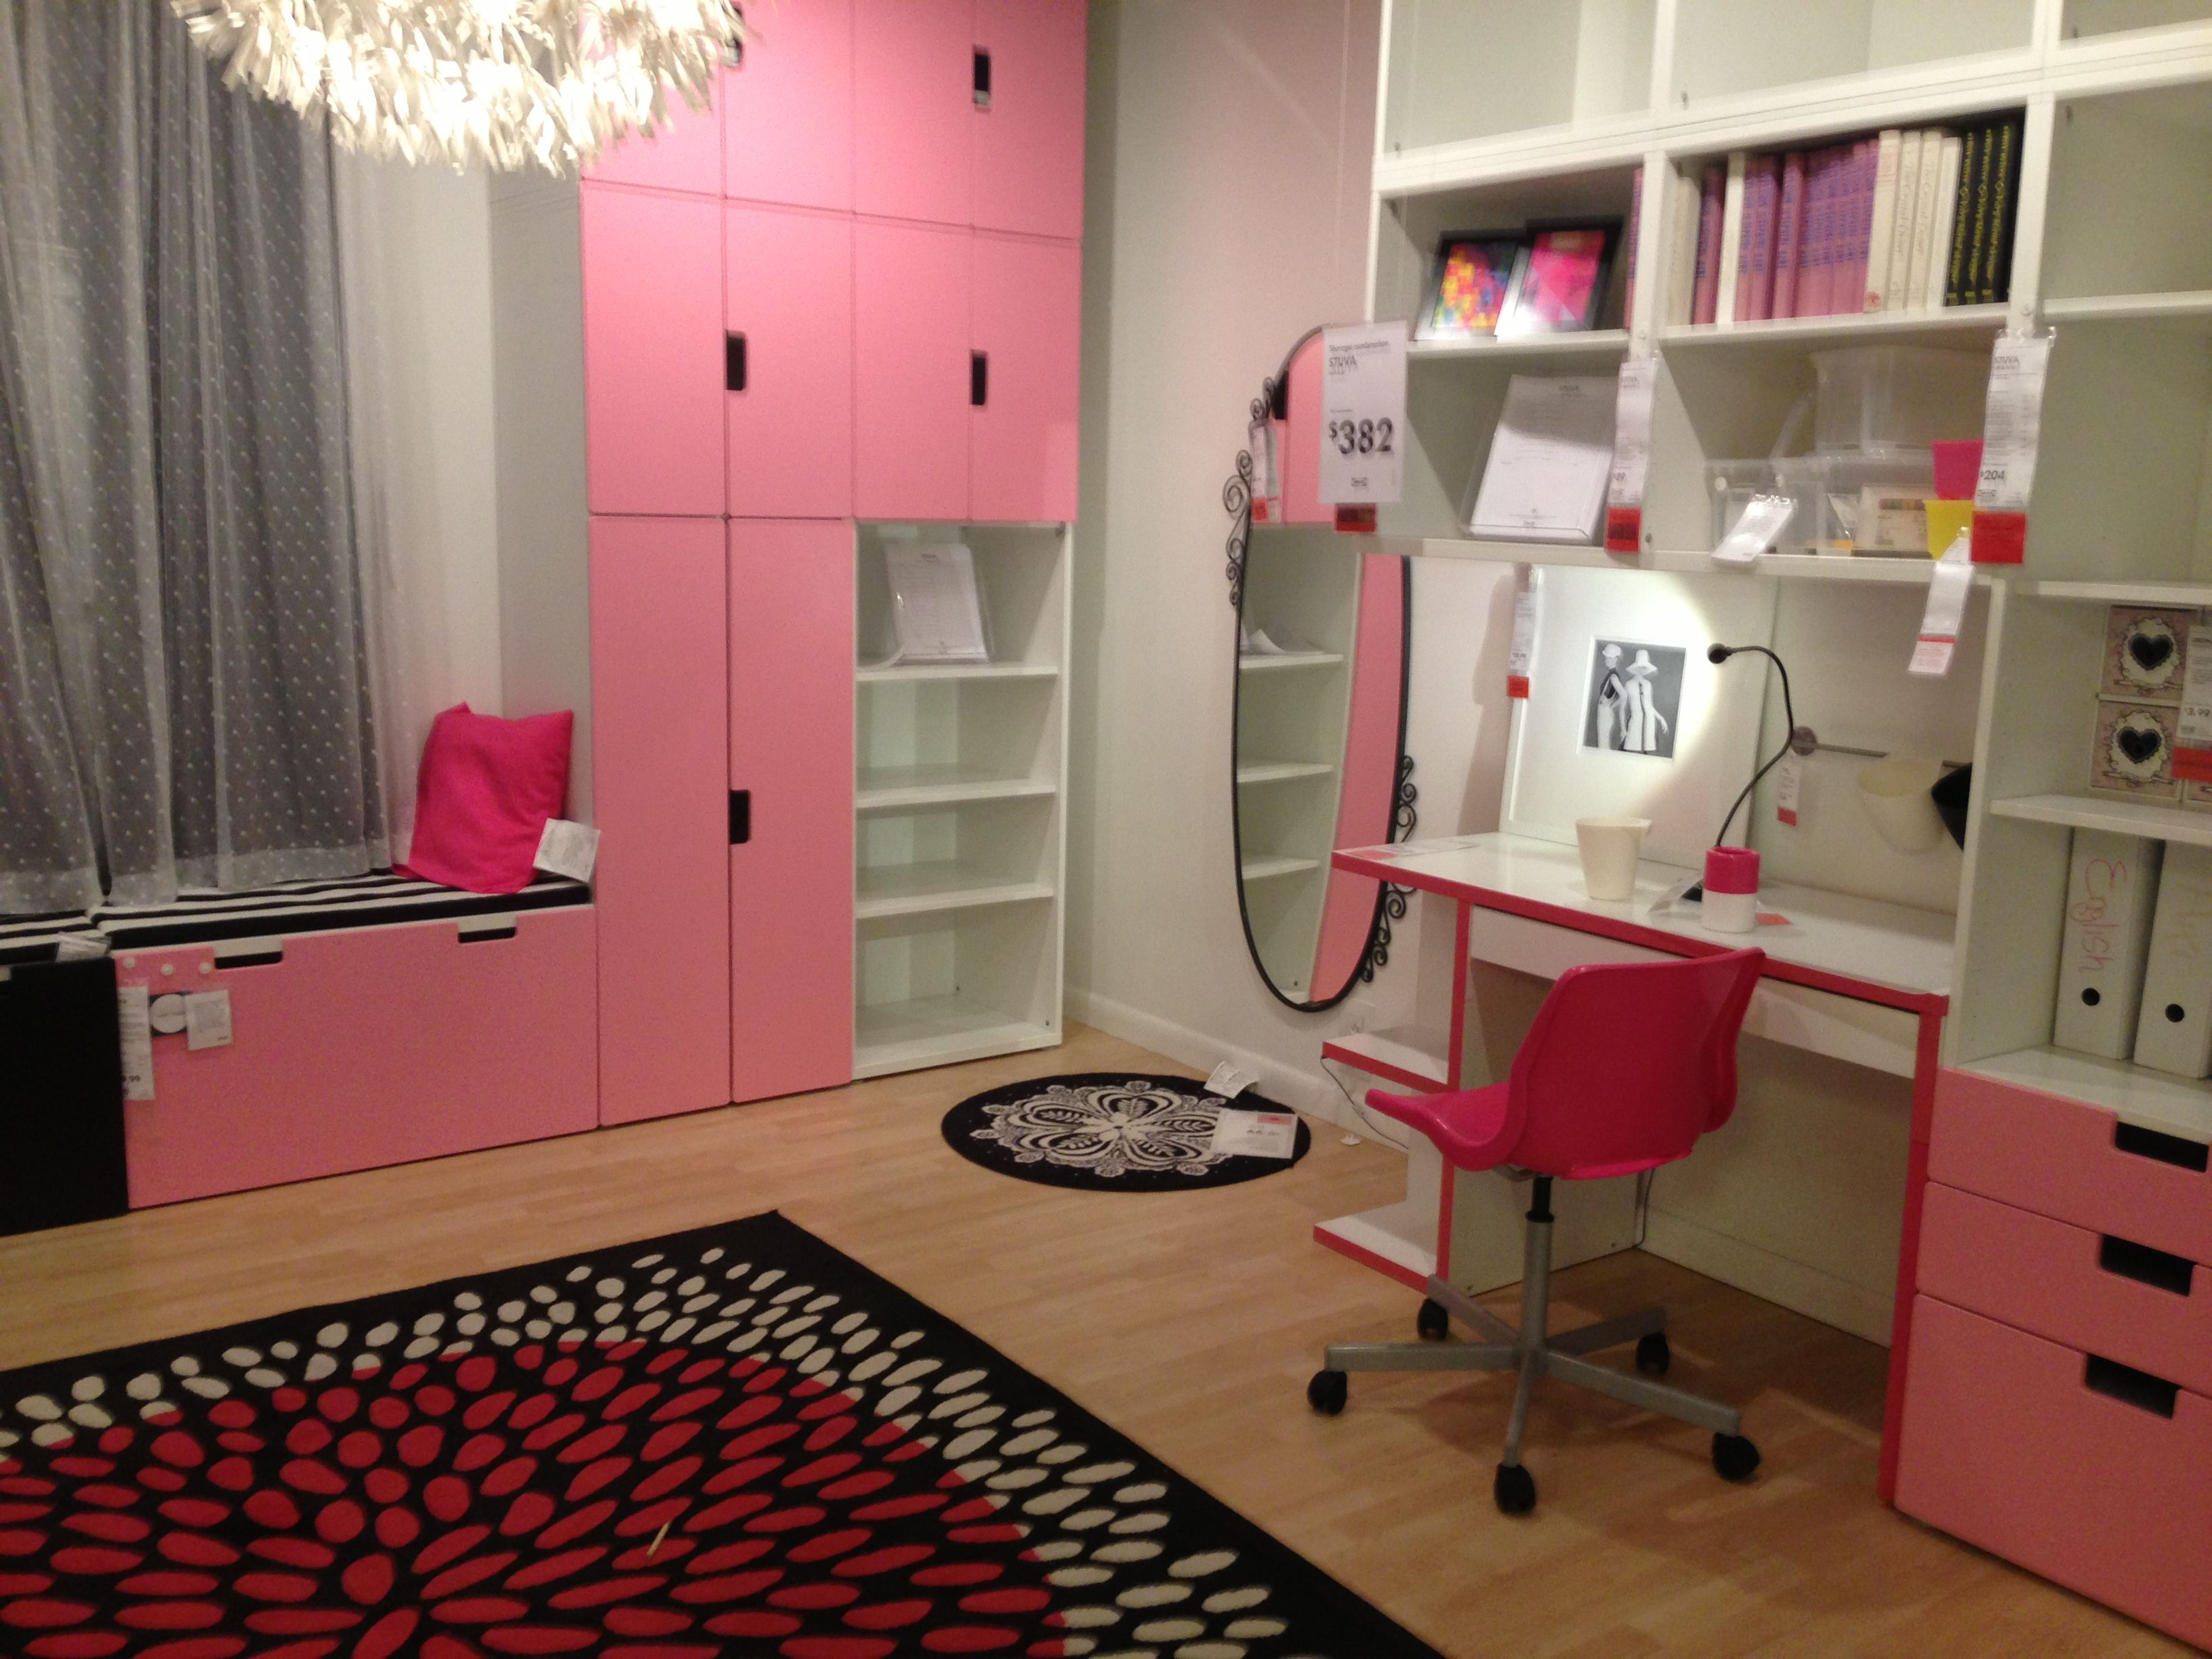 Ikea Hacks Stuva Stuva Storage And Micke Desk For Playroom Or Mm 39s Room